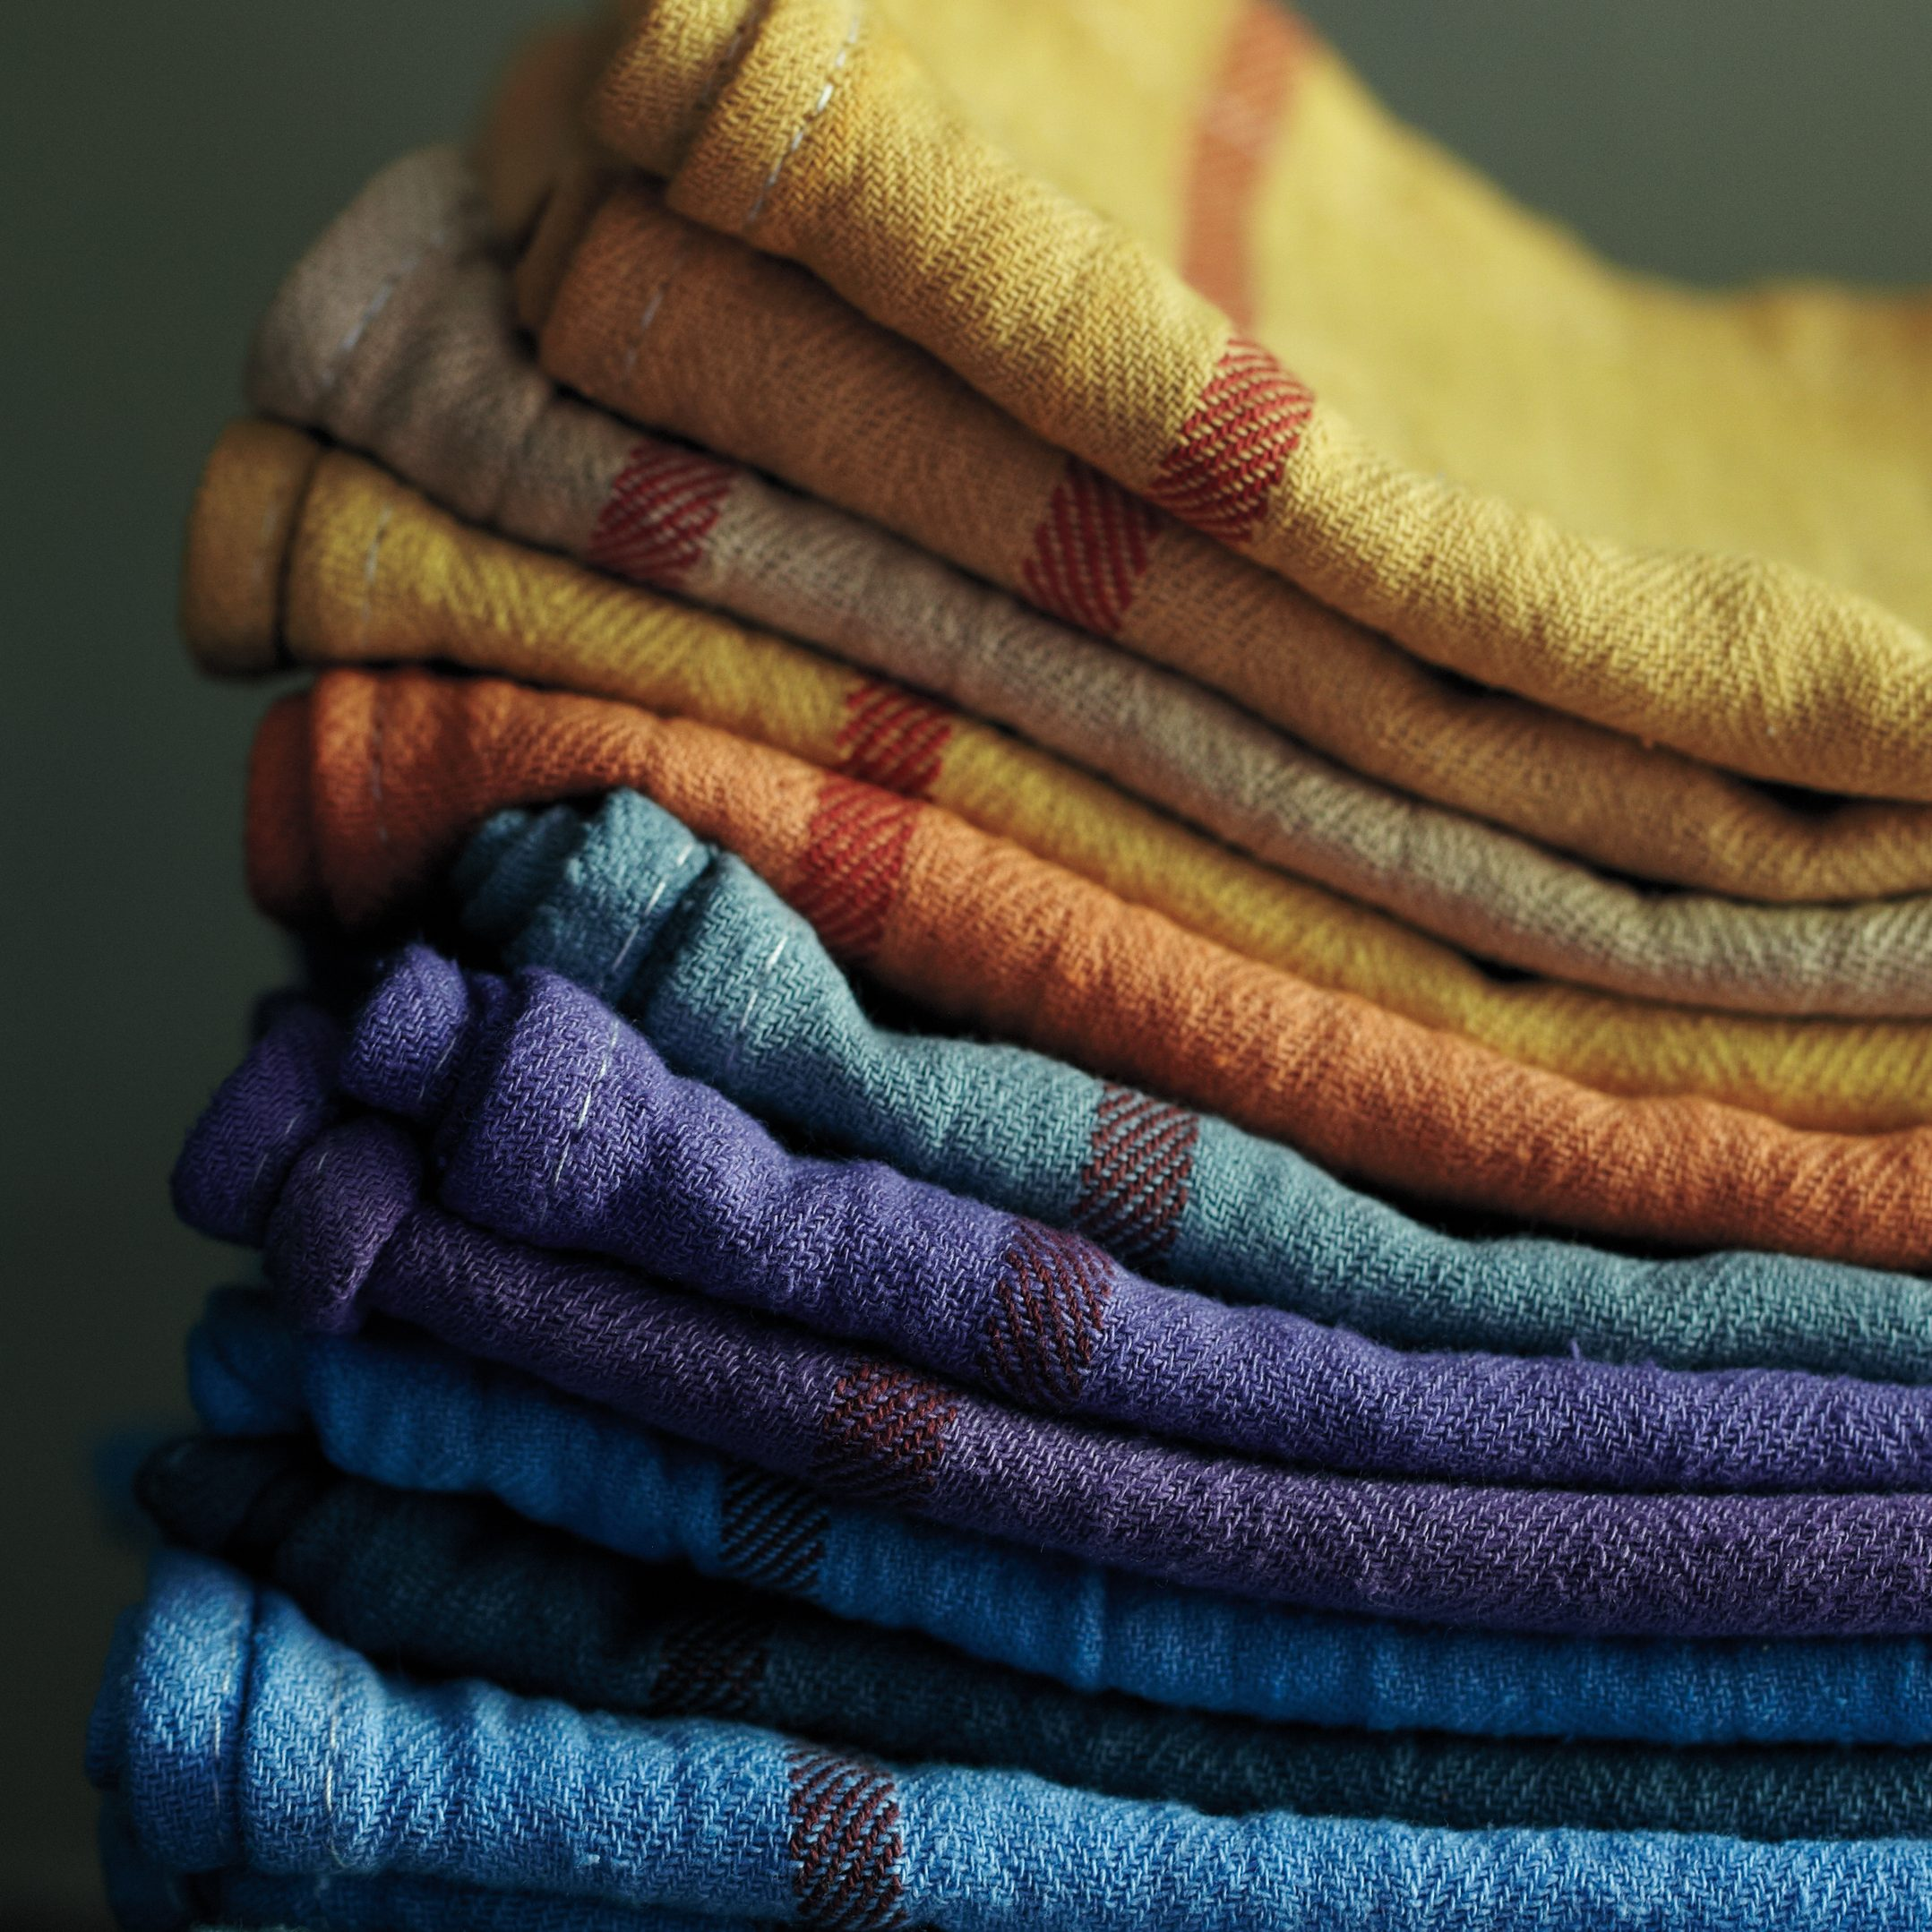 How to Dye Fabrics Using the Washing Machine